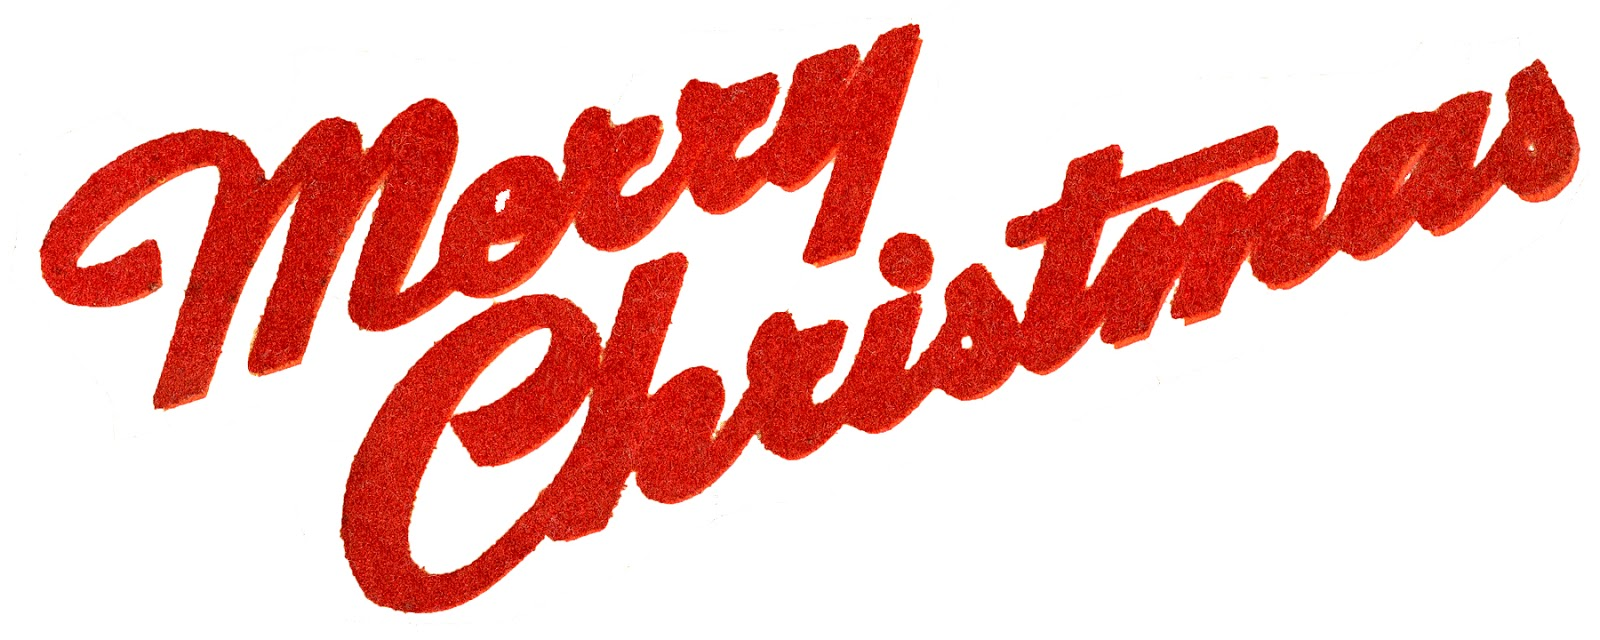 free clipart merry christmas banner - photo #30